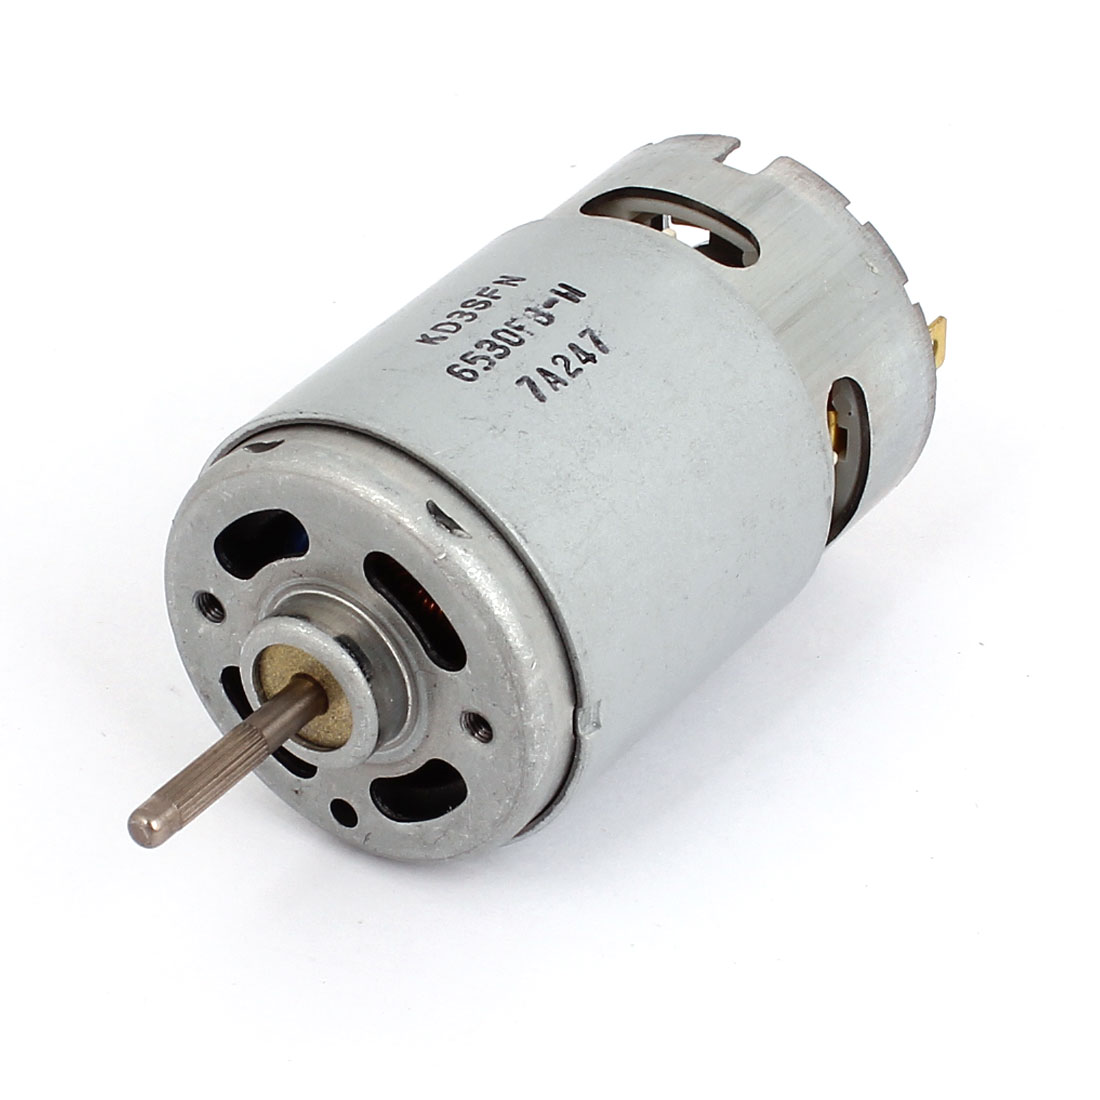 DC-12V-18000RPM-2A-3mm-Shaft-Mini-Electric-Motor-for-DIY-Toys